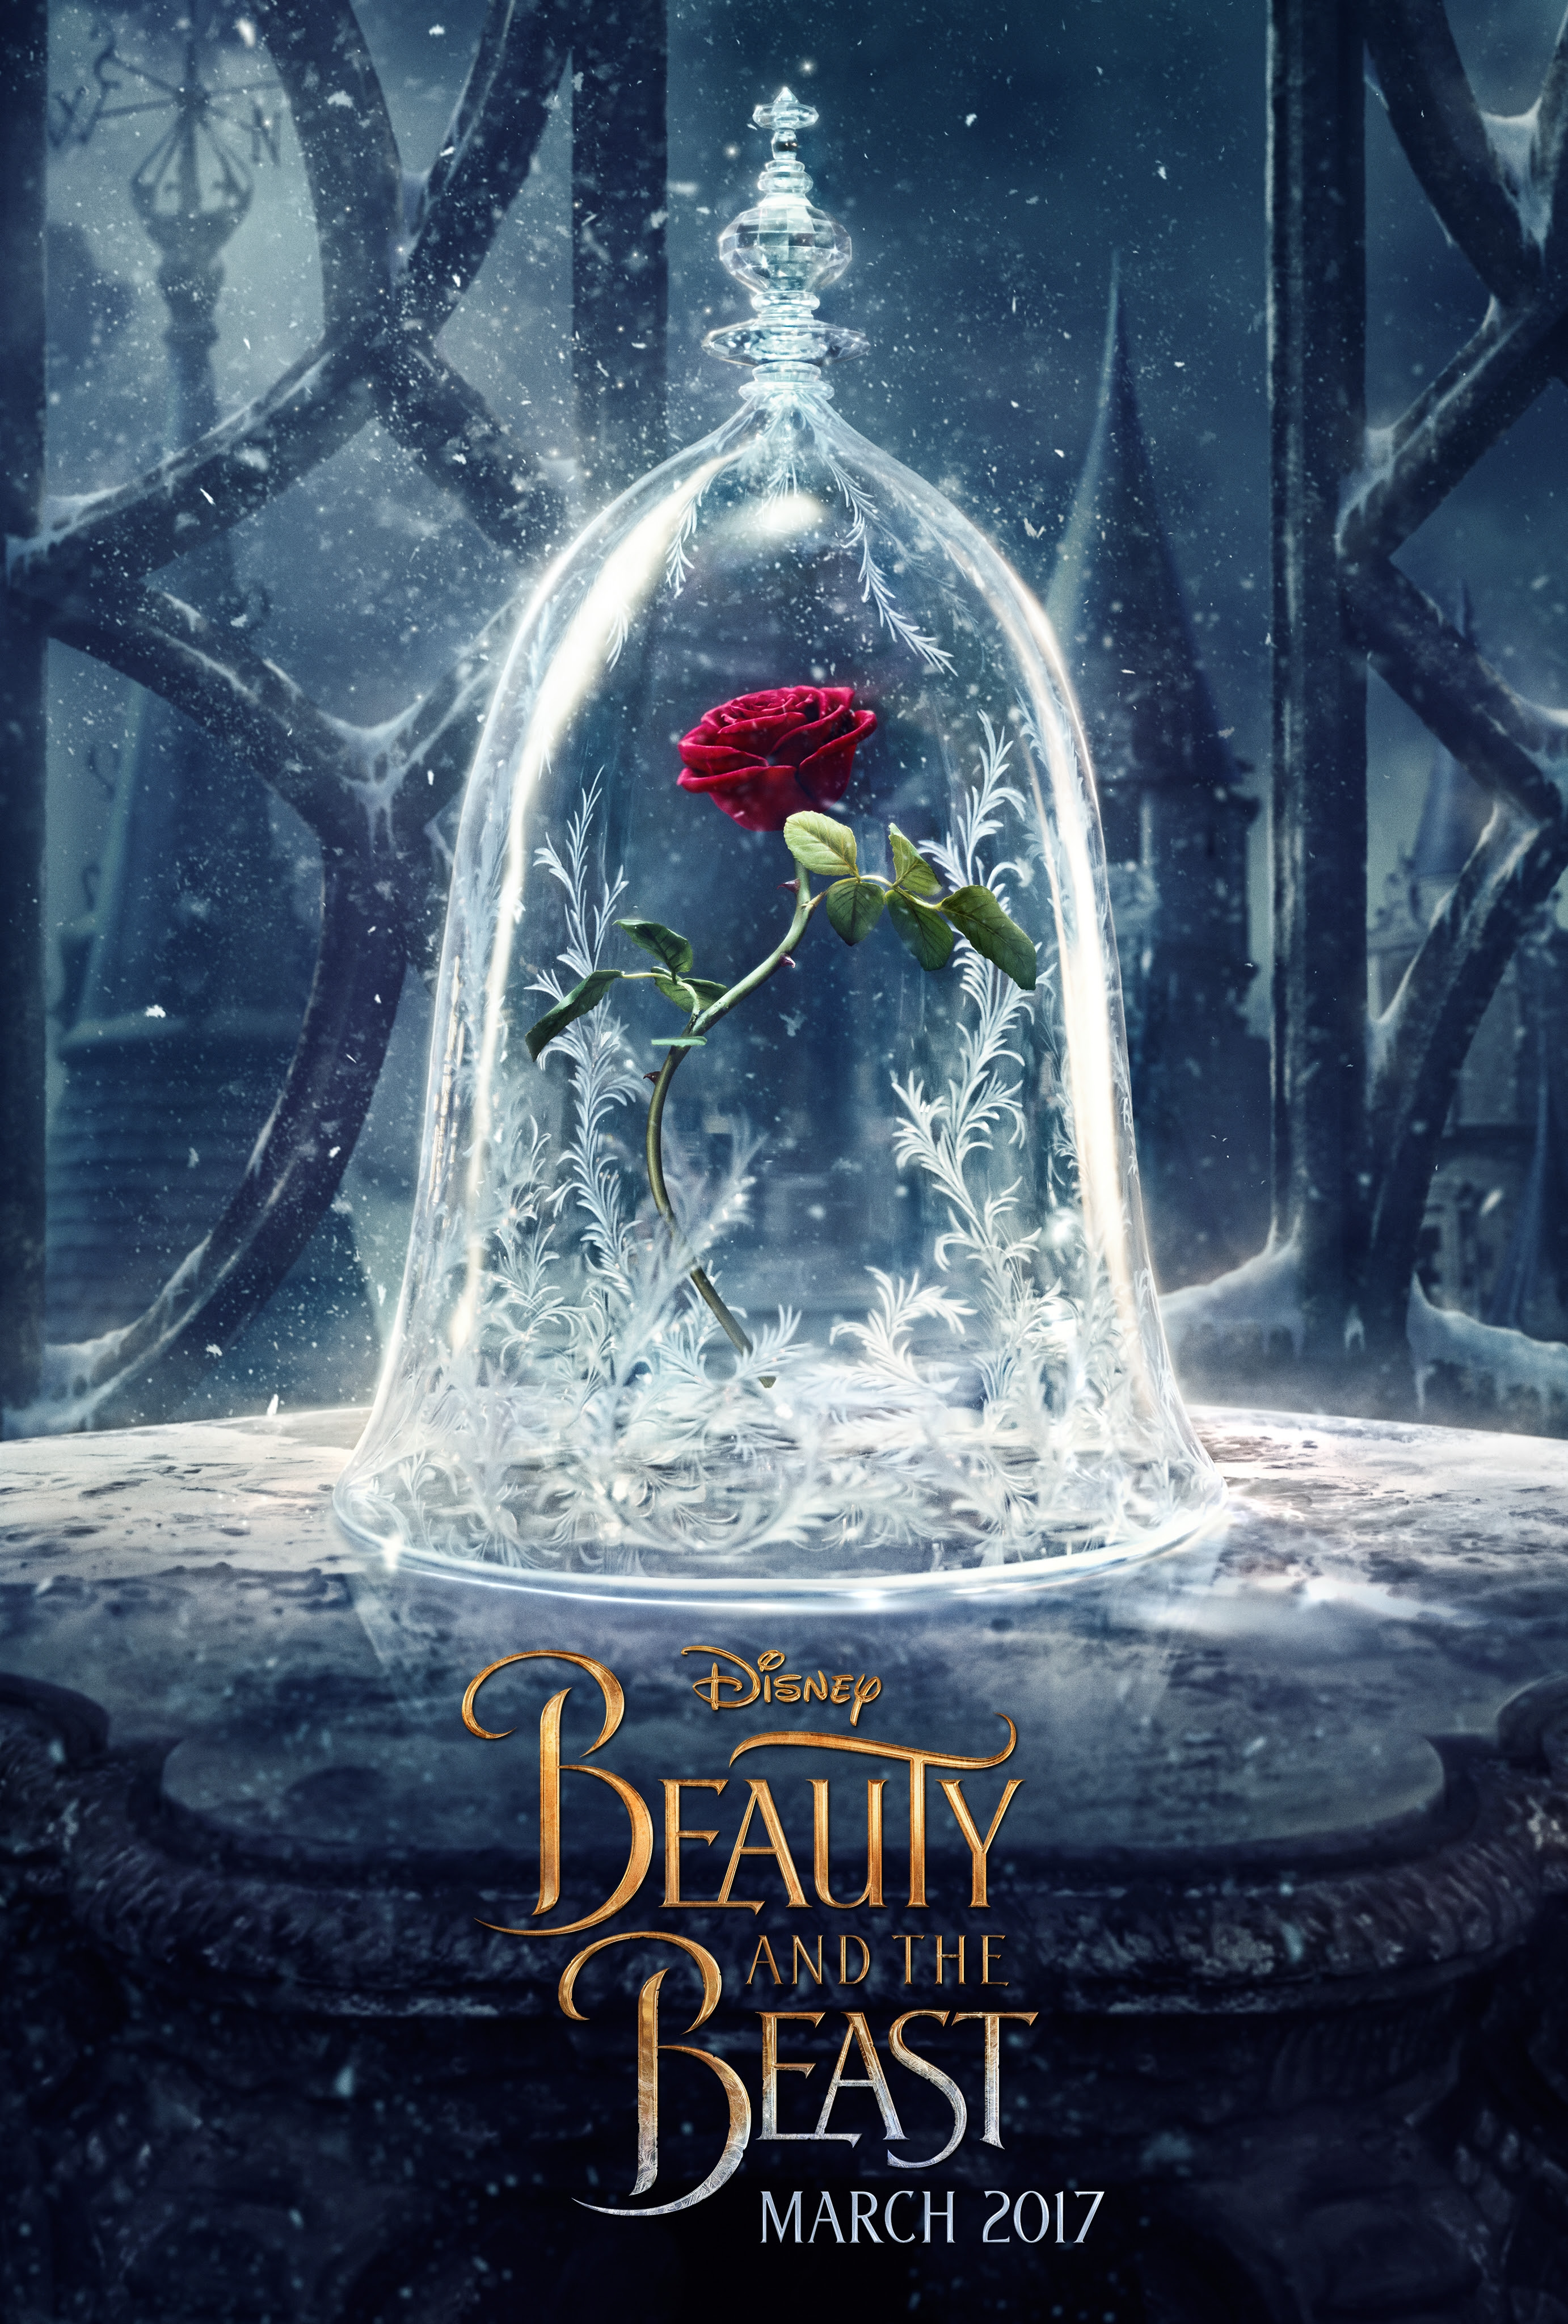 http://vignette2.wikia.nocookie.net/disney/images/5/5a/Beauty_and_the_Beast_2017_teaser_poster.jpg/revision/latest?cb=20160715085129